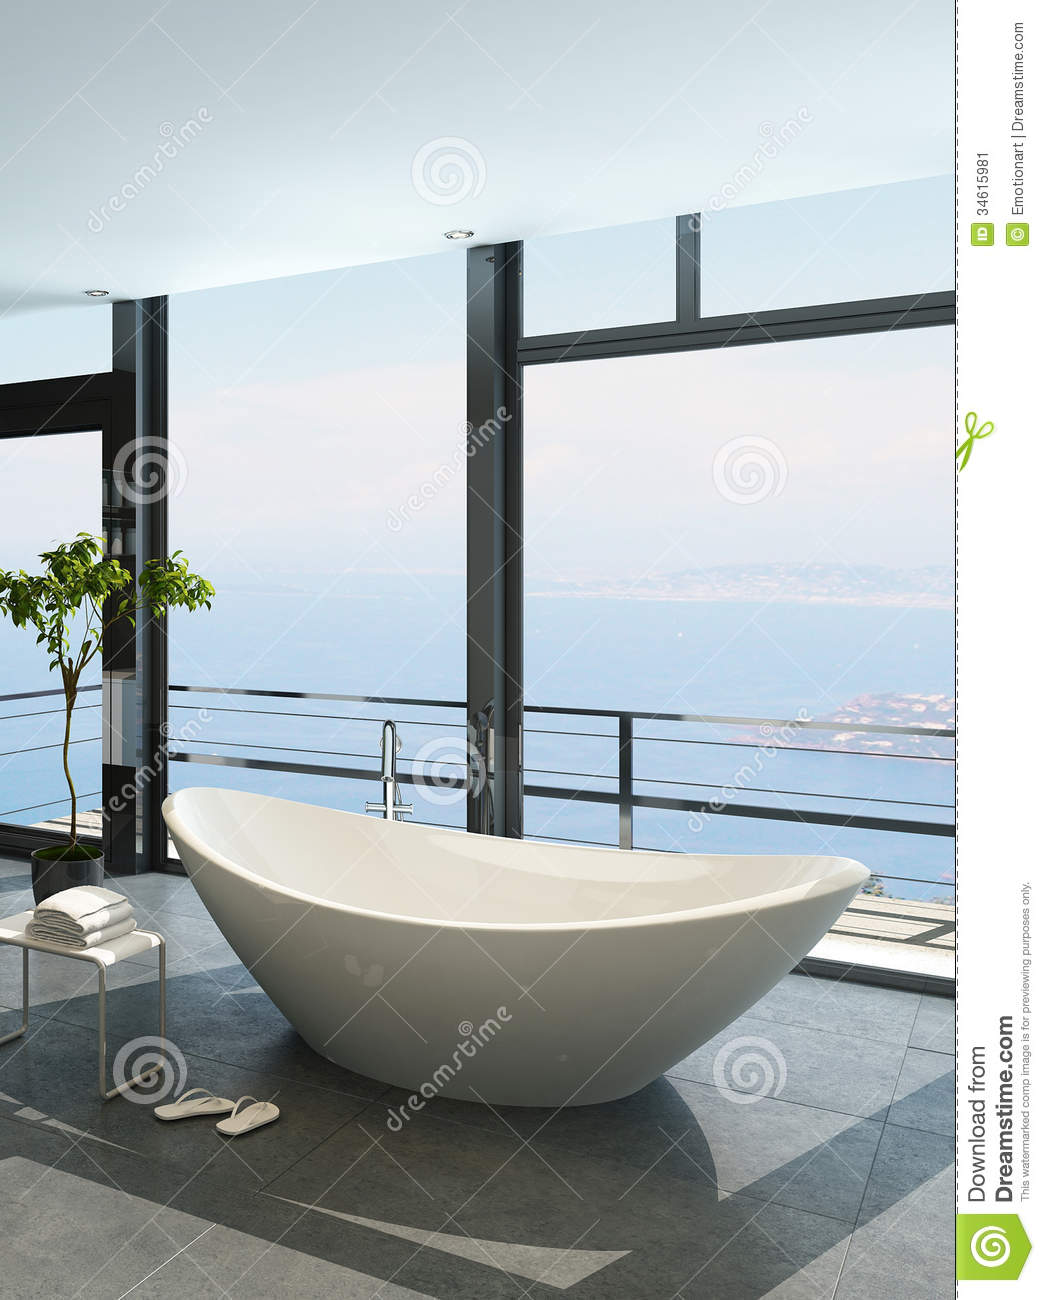 teure luxusbadewanne gegen panoramisches fenster mit meerblickansicht stock abbildung. Black Bedroom Furniture Sets. Home Design Ideas